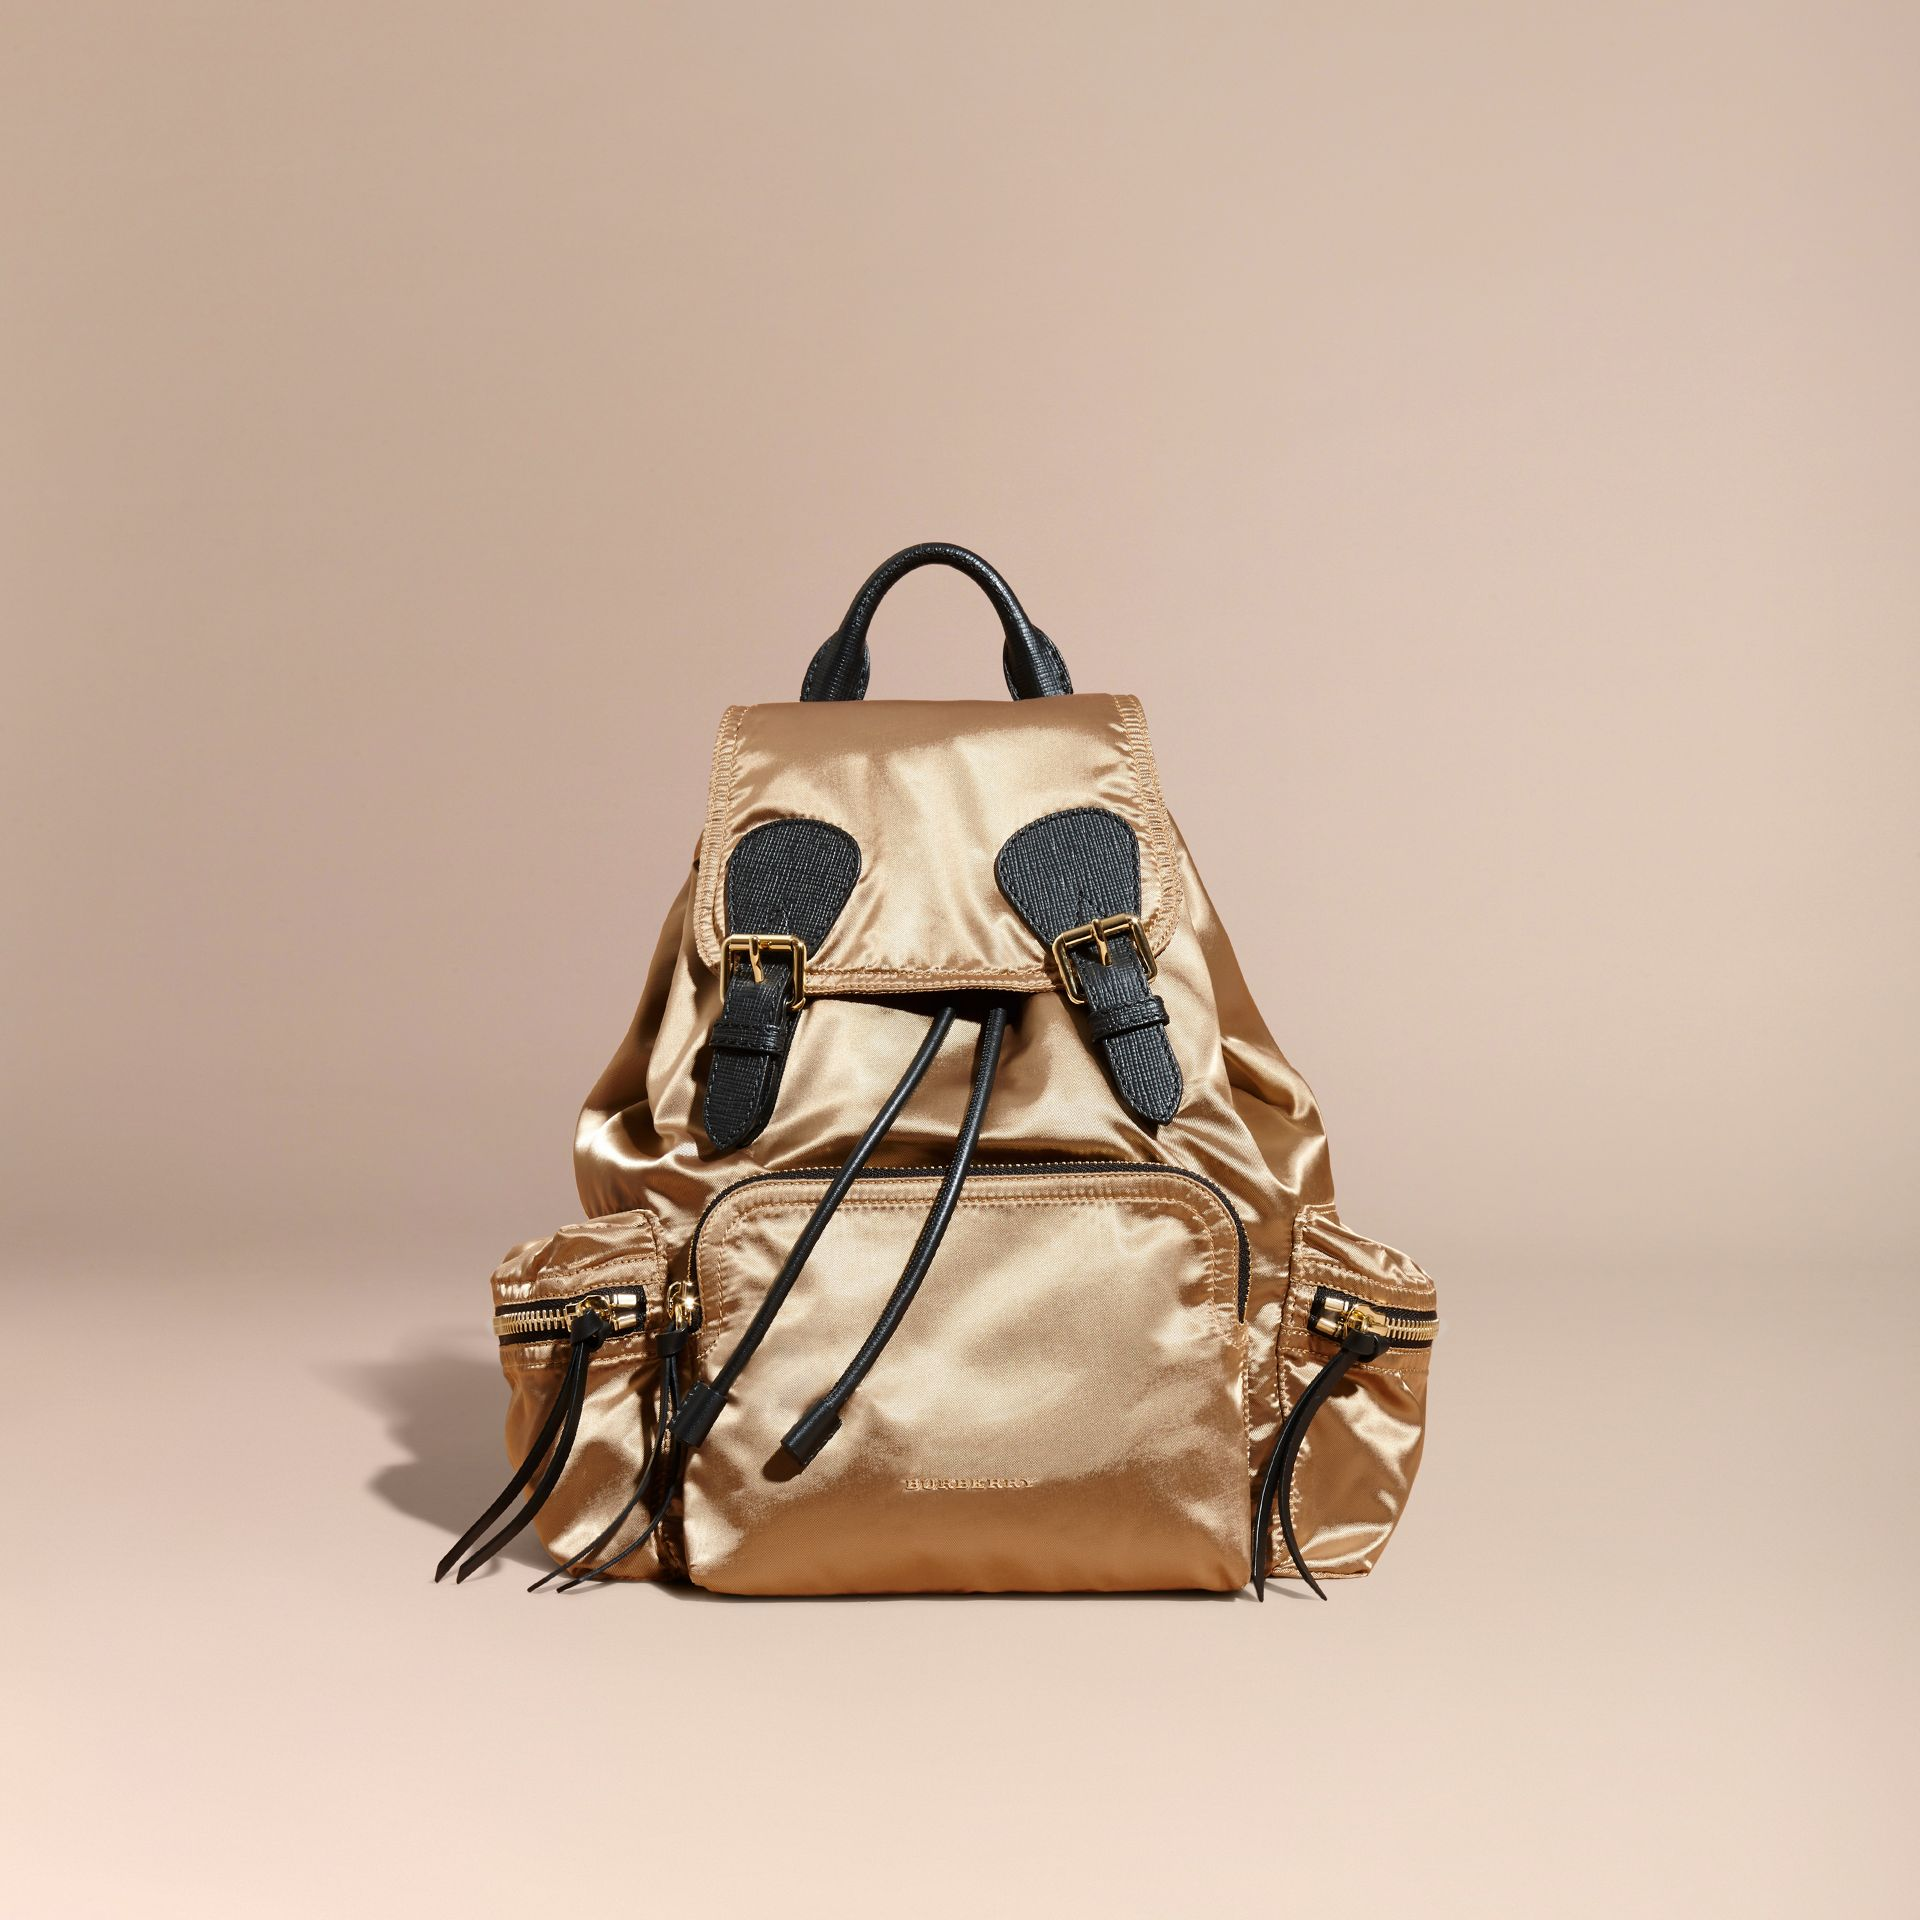 Gold/black The Medium Rucksack in Two-tone Nylon and Leather Gold/black - gallery image 8